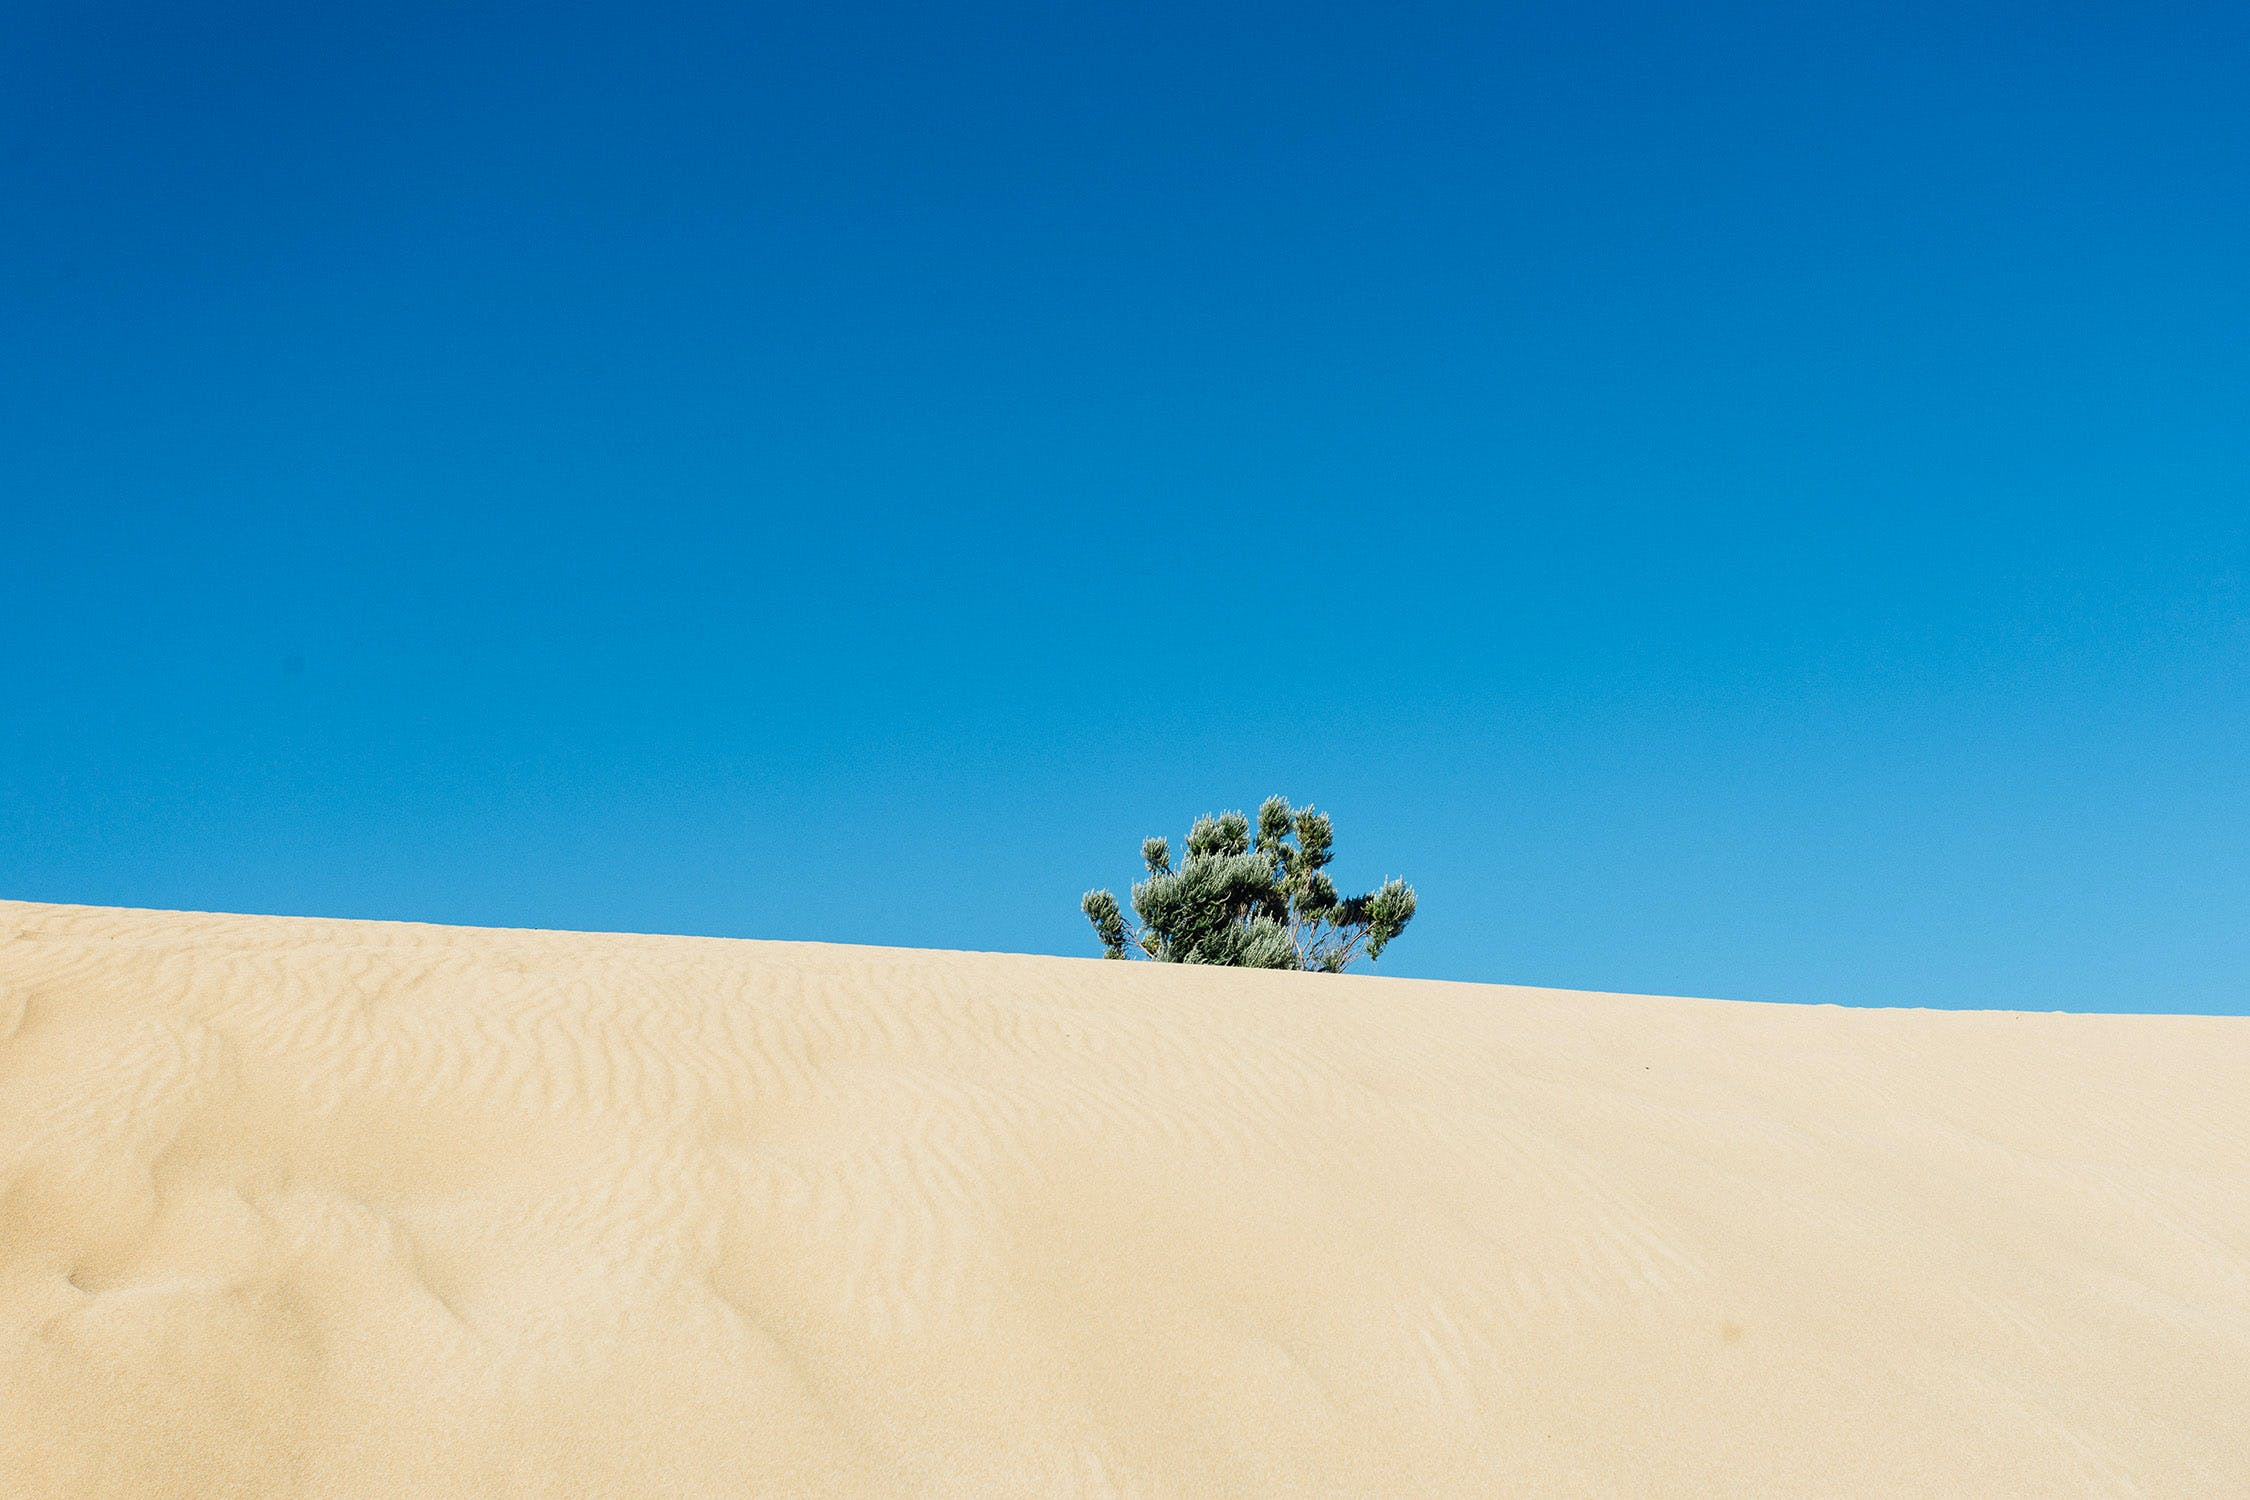 Green Leafed Tree in the Middle of Desert